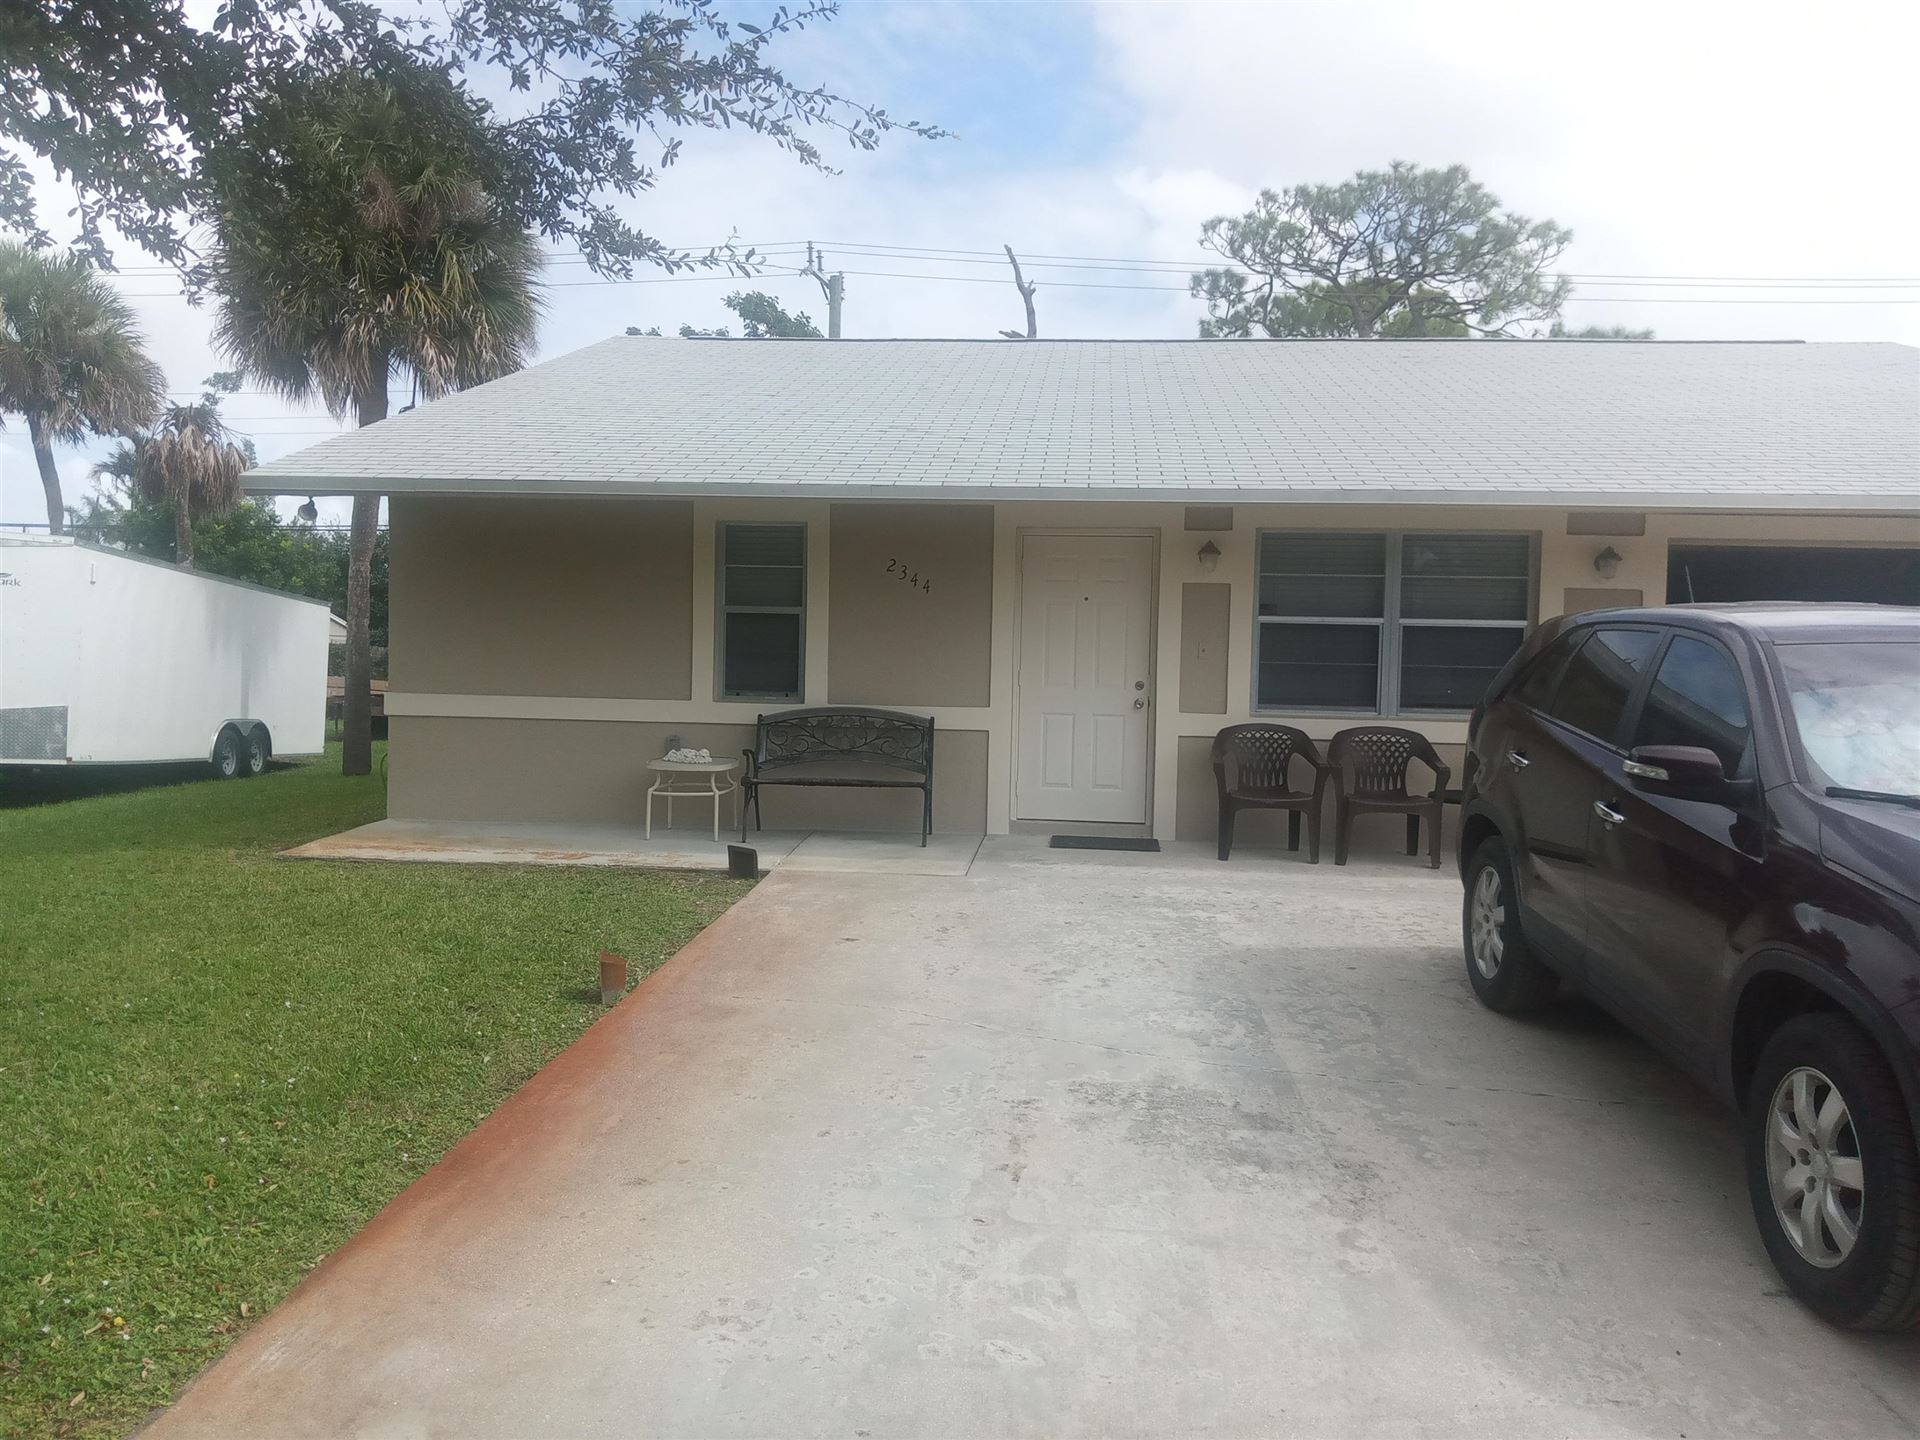 Photo of 2344 Taylor Lane, West Palm Beach, FL 33415 (MLS # RX-10669496)